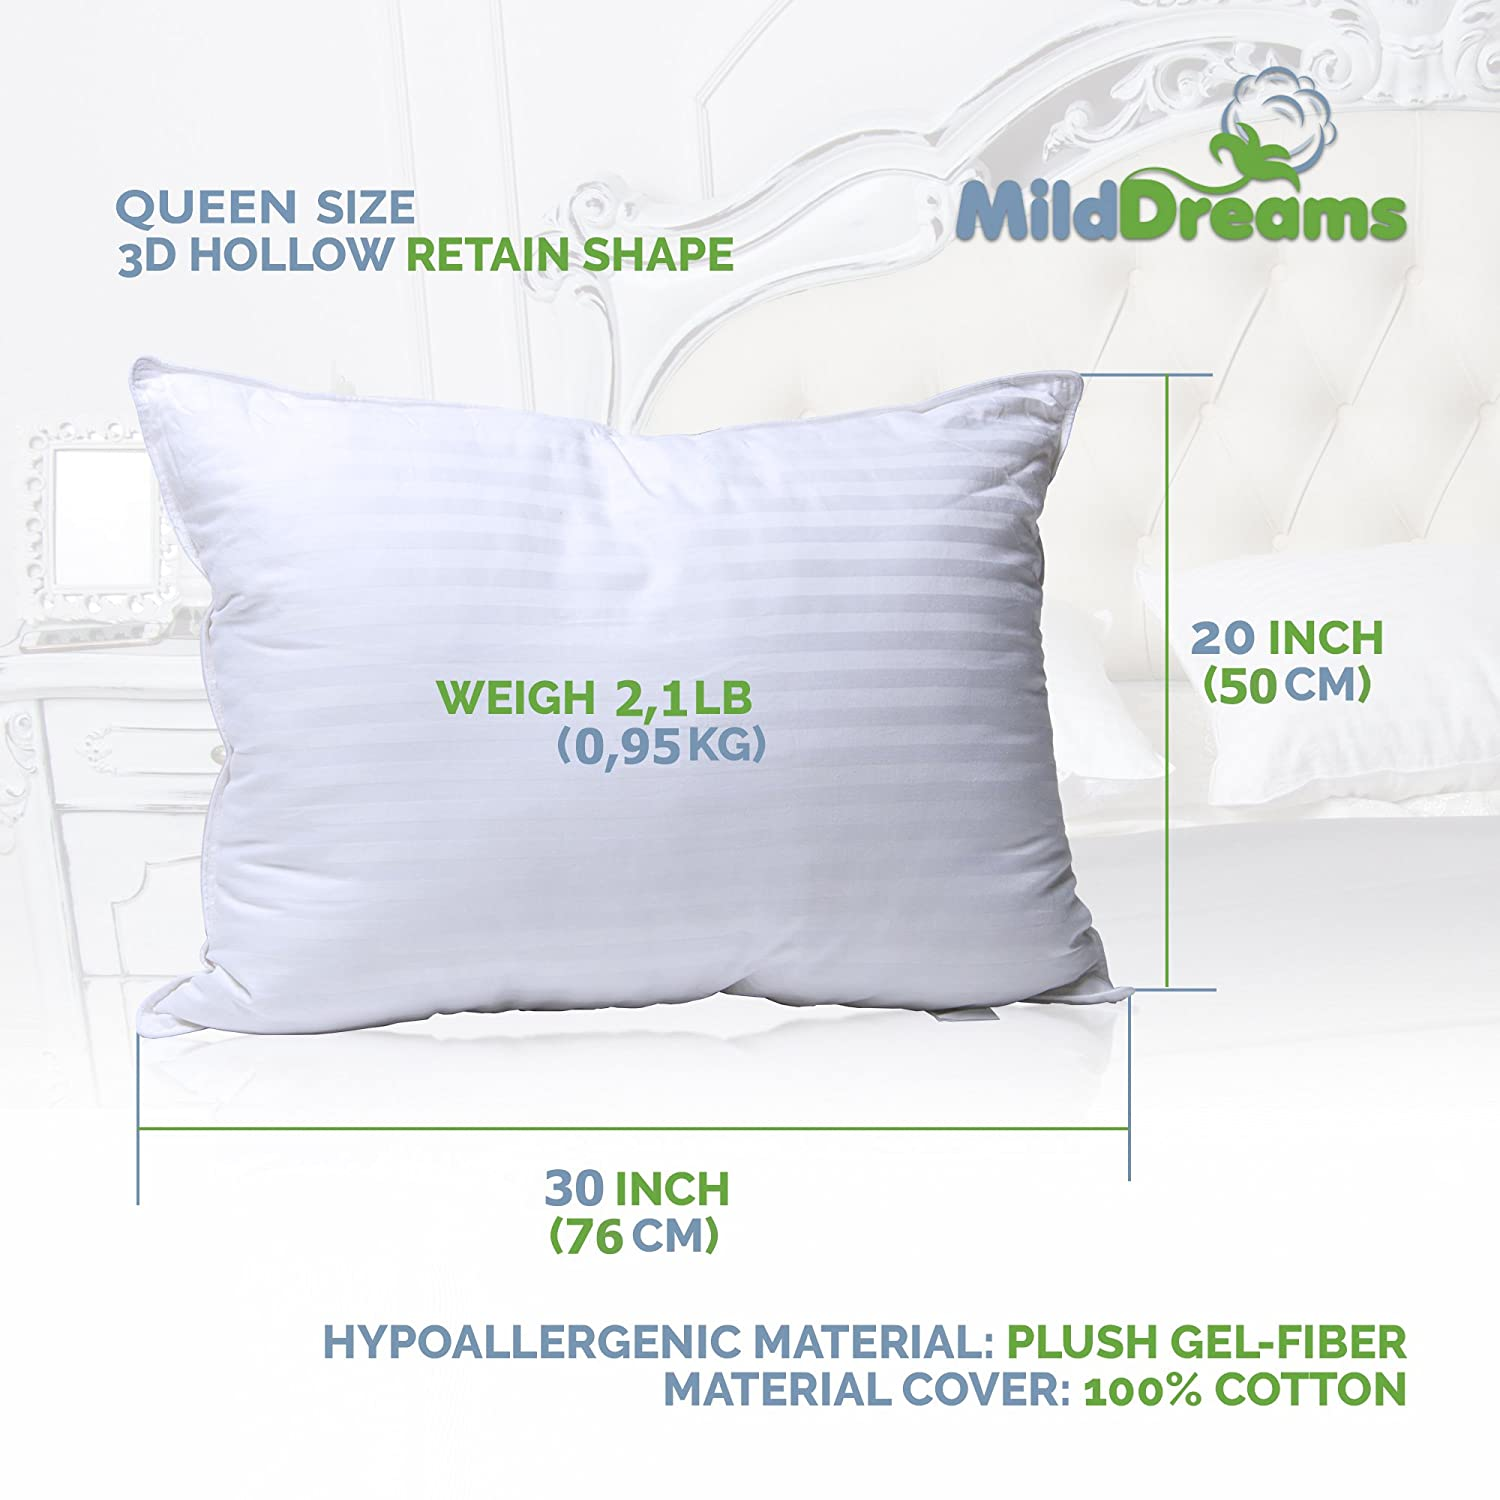 Amazoncom Milddreams Pillows For Sleeping 2 Pack Queen Size 20x30